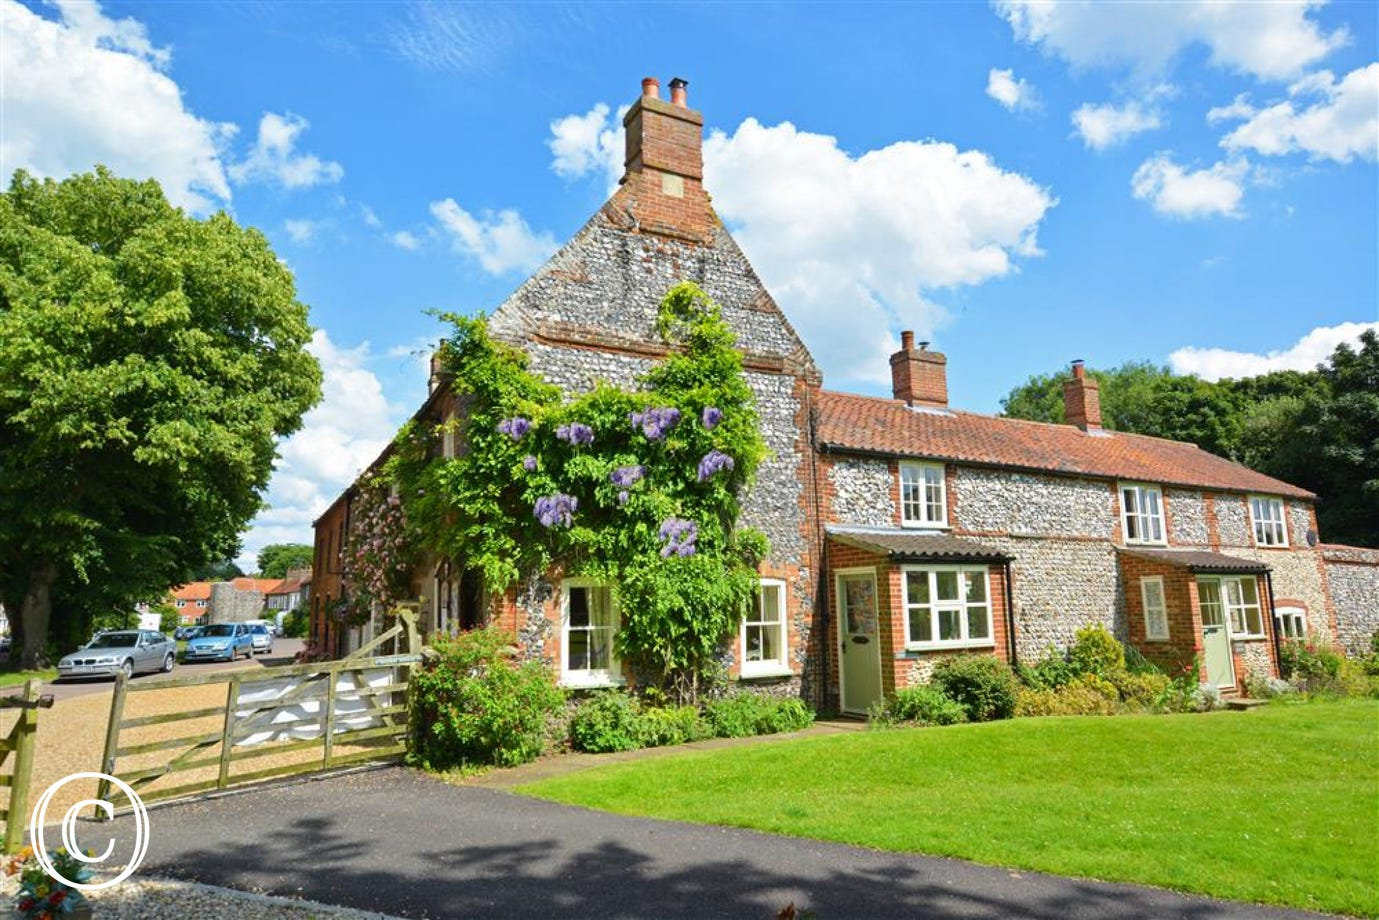 Exterior image of this delightful grade II listed cottage,